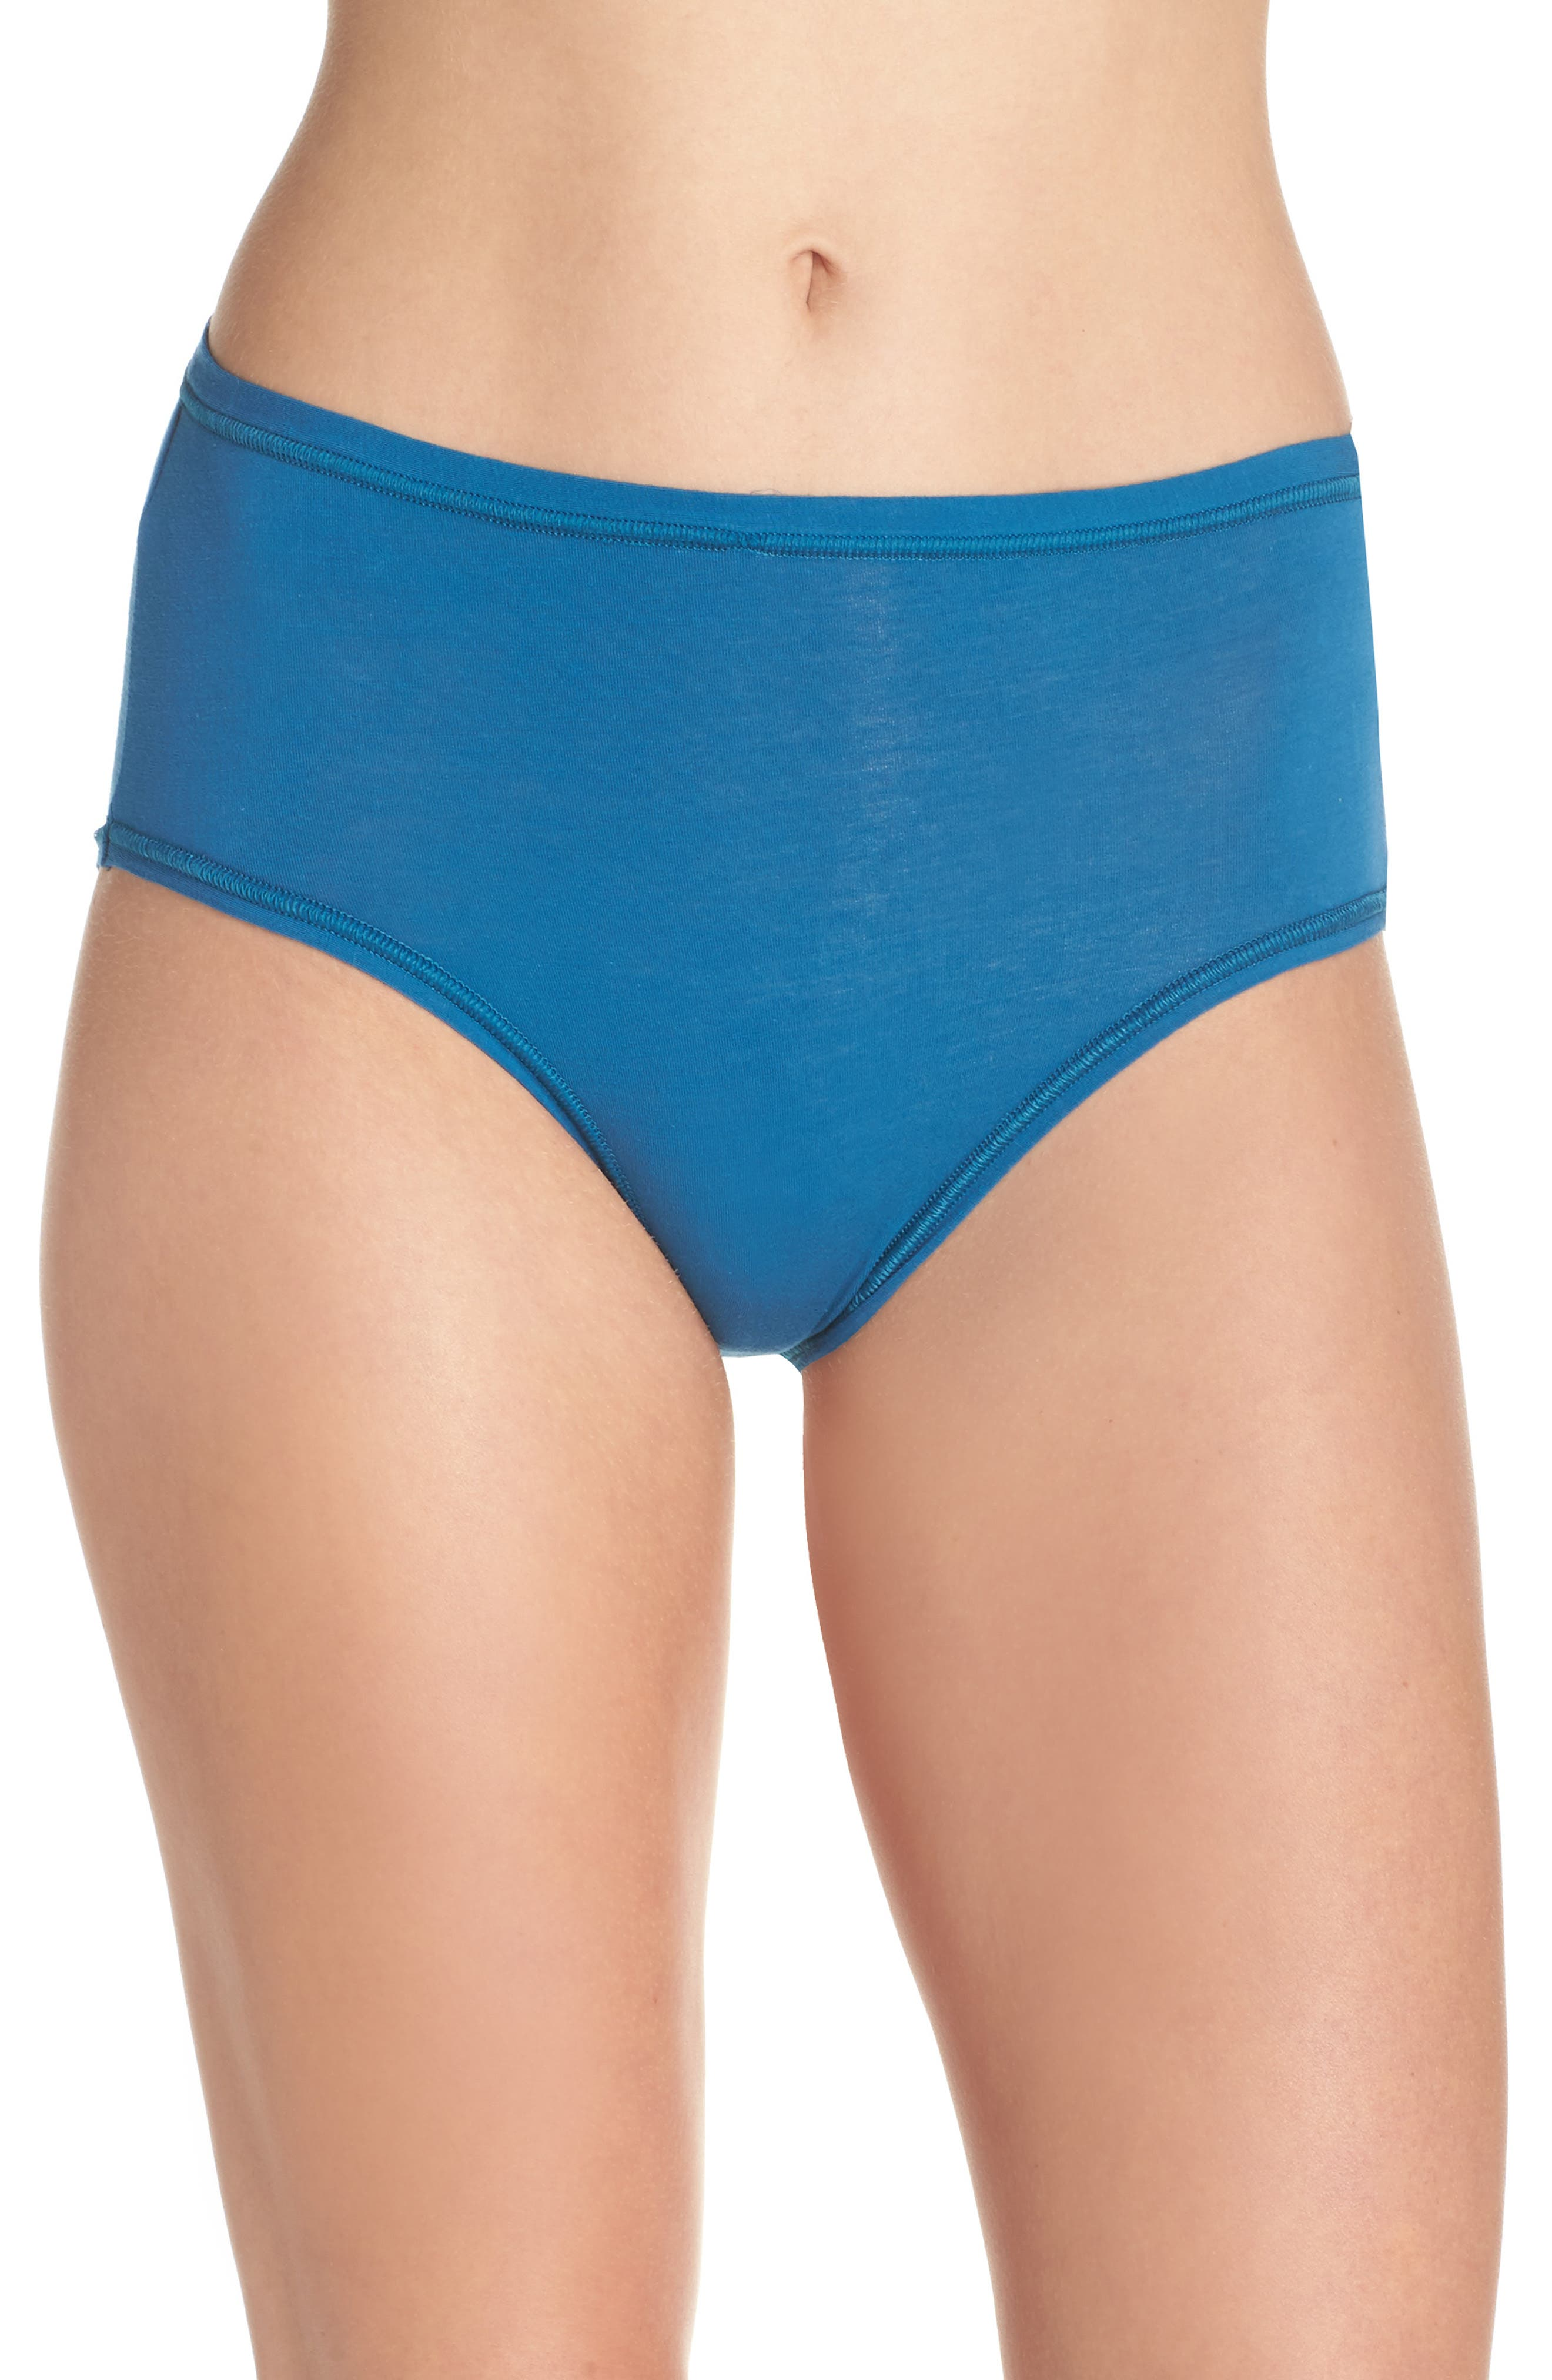 Alternate Image 1 Selected - Wacoal B Fitting High Cut Briefs (3 for $39)